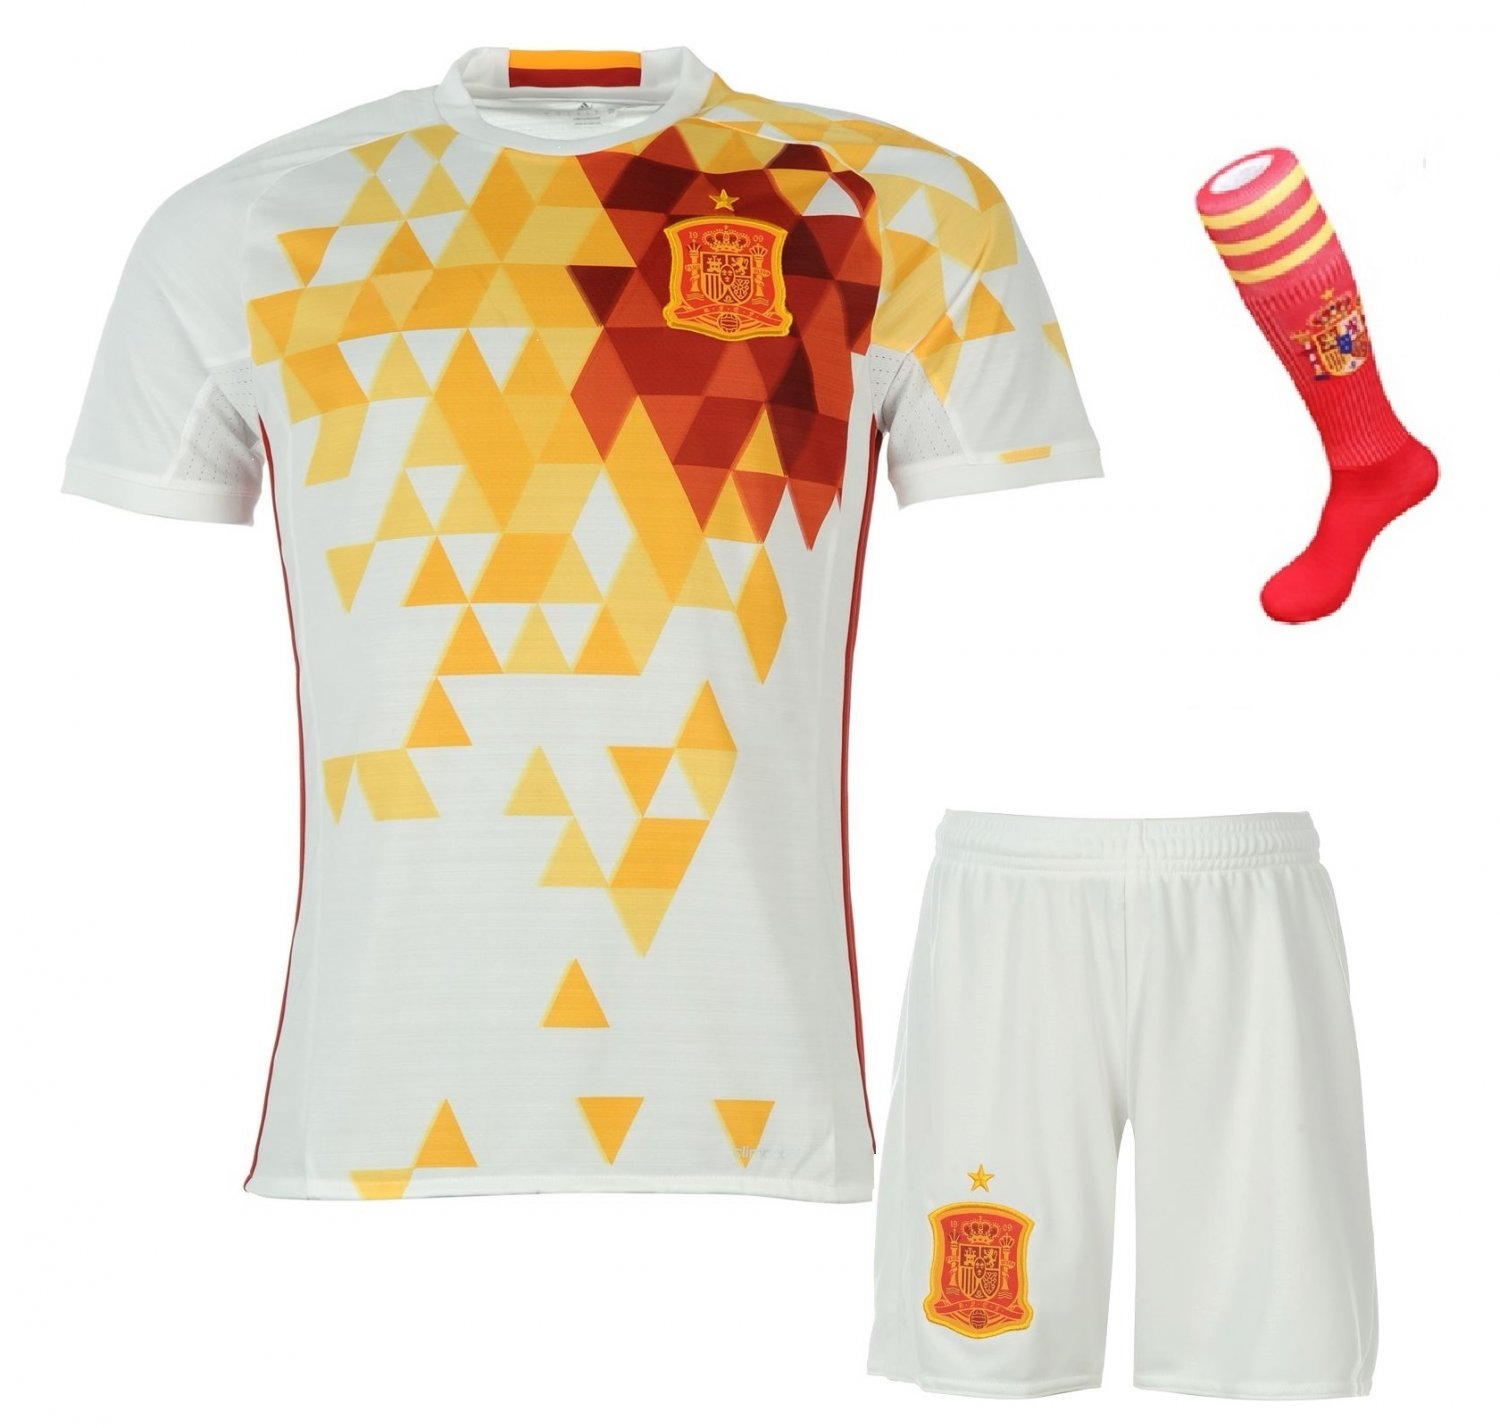 Spain World Cup Away football soccer jersey w shorts & socks kid youth for age 10-12